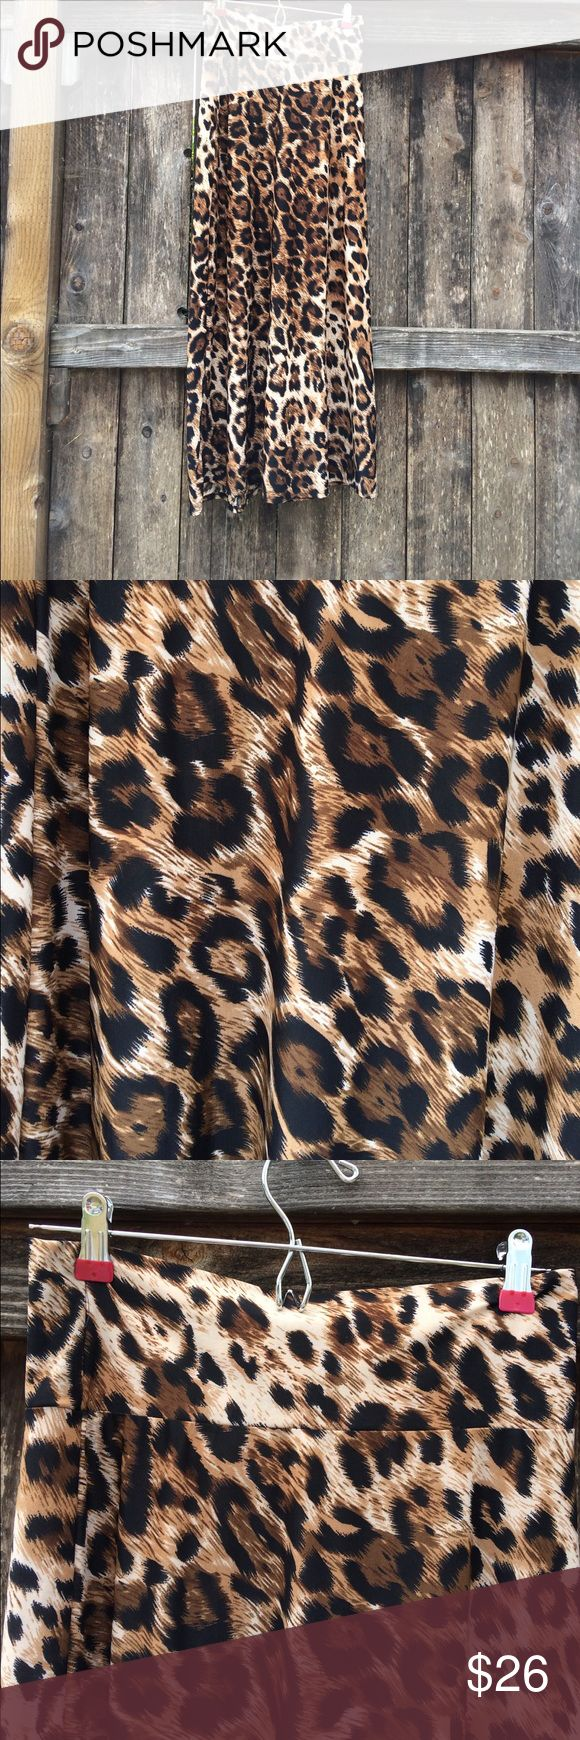 """Leopard Maxi Leopard Maxi skirt gently worn. Rayon spandex blend material so super light weight and silky like. Waist:13.5"""" unstretched, hips:18"""", and length: 40"""". Feel free to ask questions, I ship Same day! Skirts Maxi"""